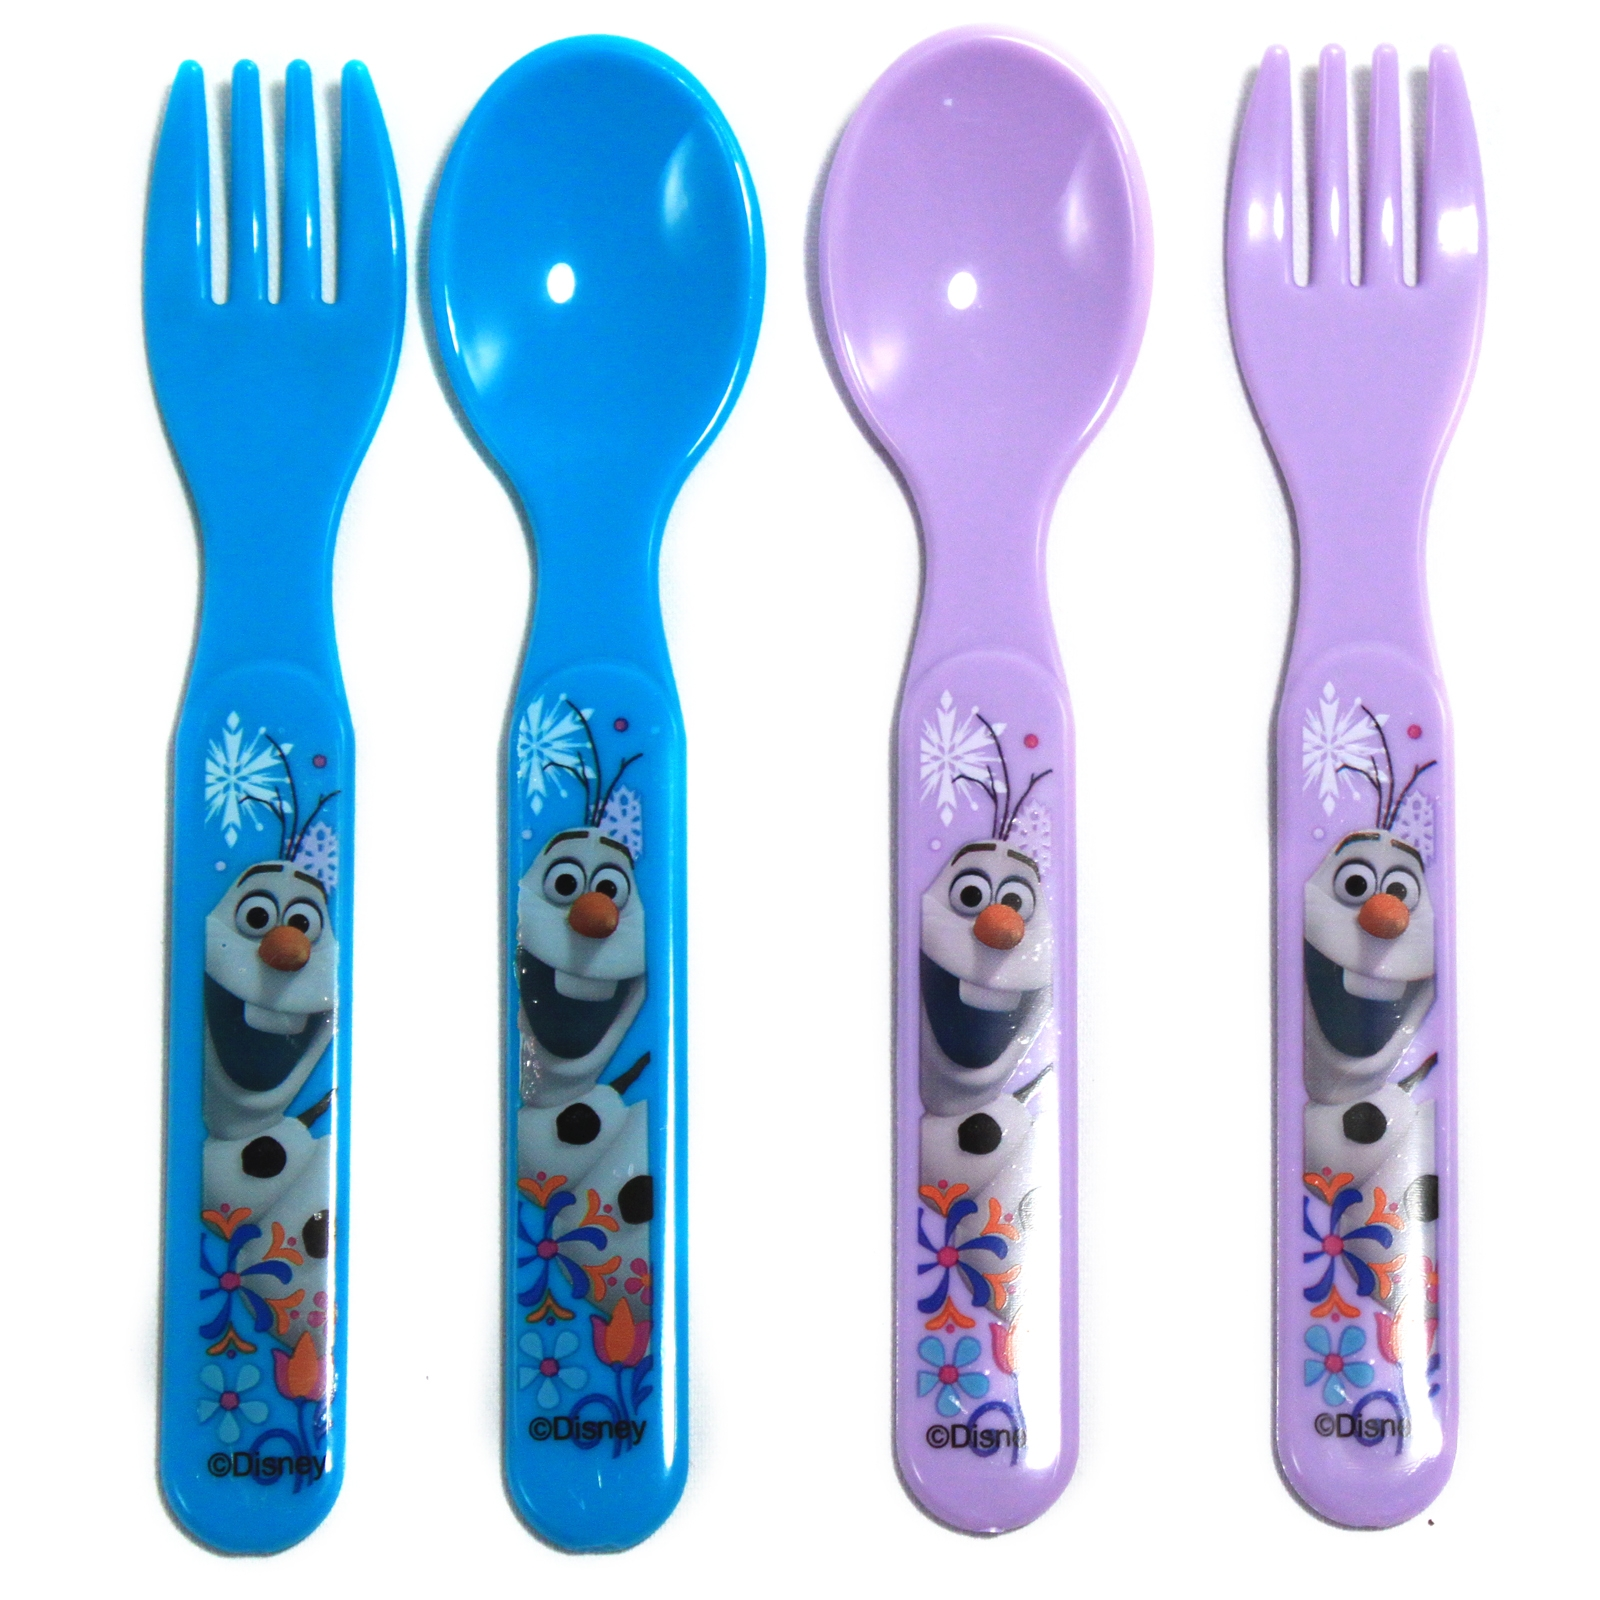 disney frozen childrens lunch fork and spoon BPA free utensil set 4 piece 4pc Disney Frozen Childrens Utensil Set BPA Free